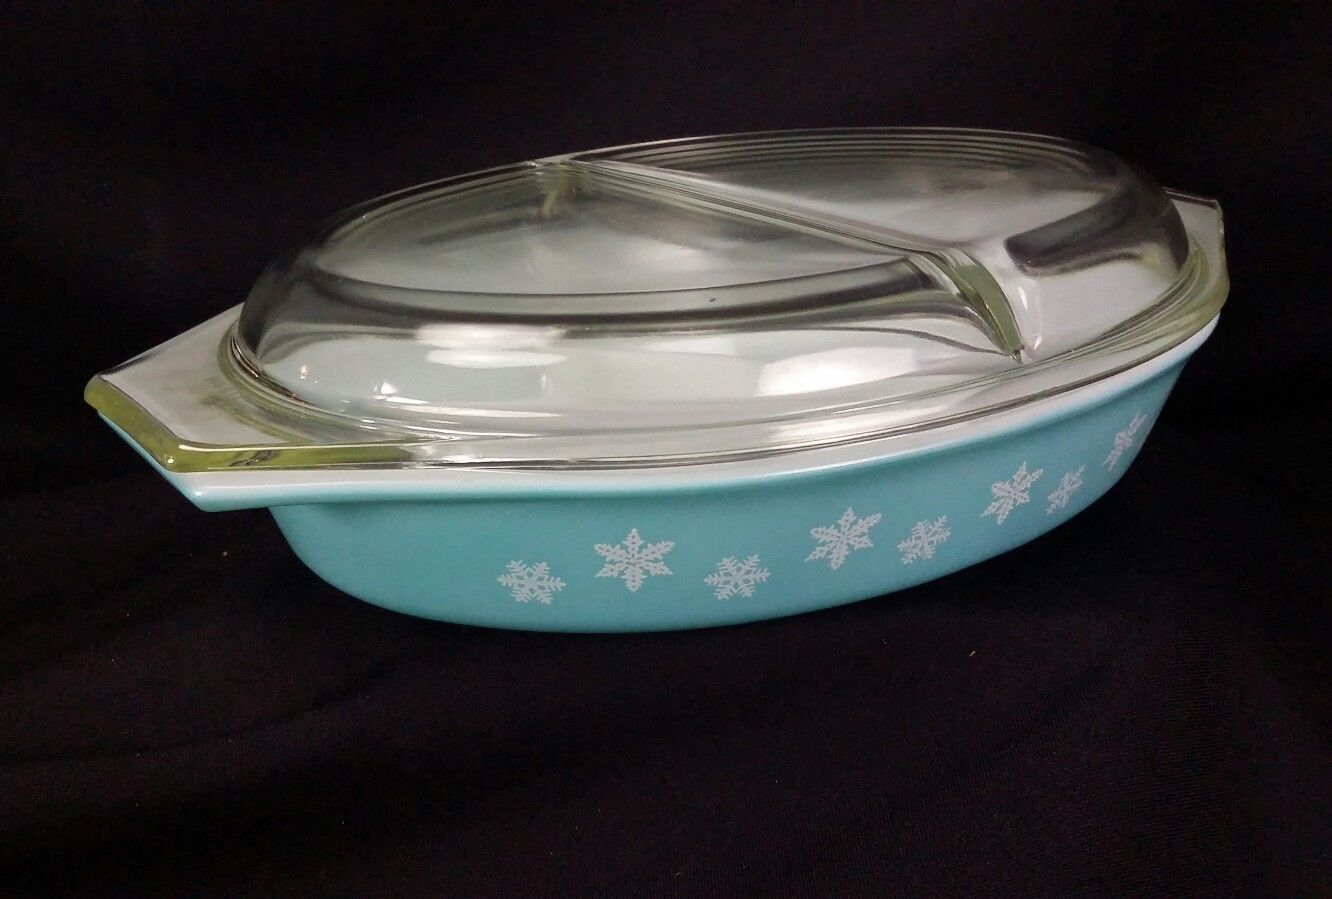 Vintage Pyrex Covered Divided Casserole Dish Turquoise Snowflake 1.5 Qt  USA image 6